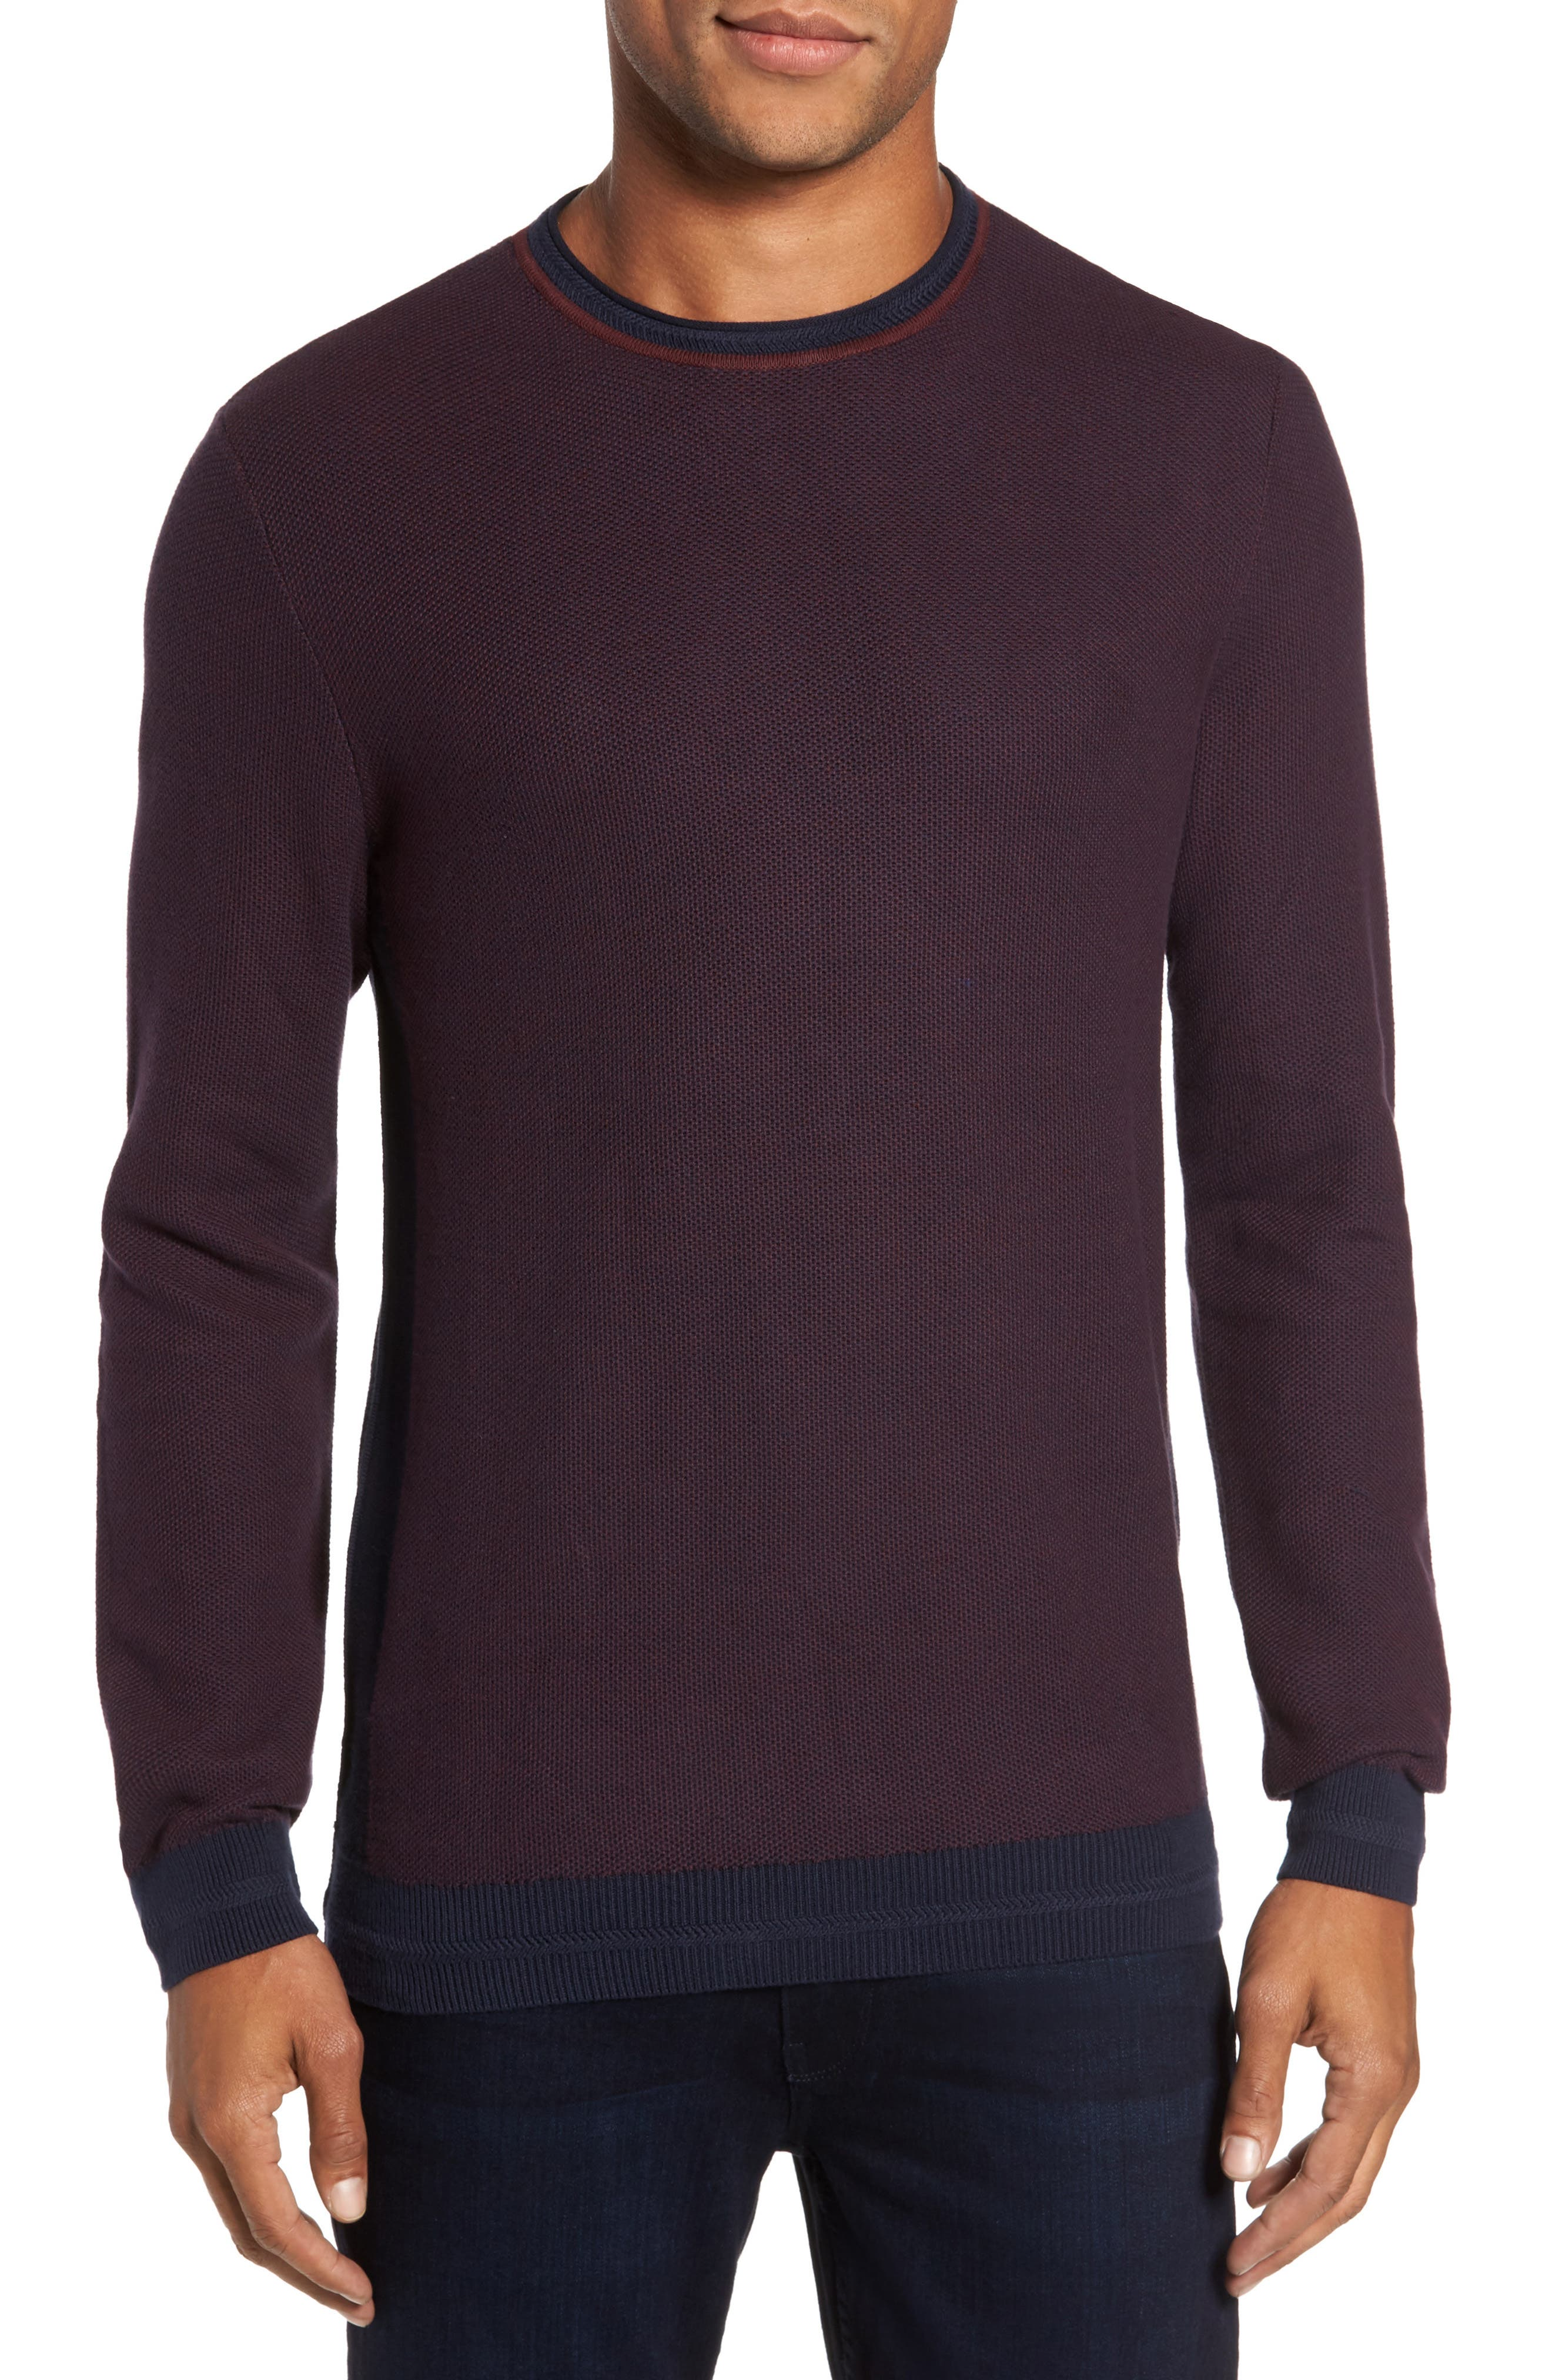 Vince Camuto Space Dye Slim Fit Sweater